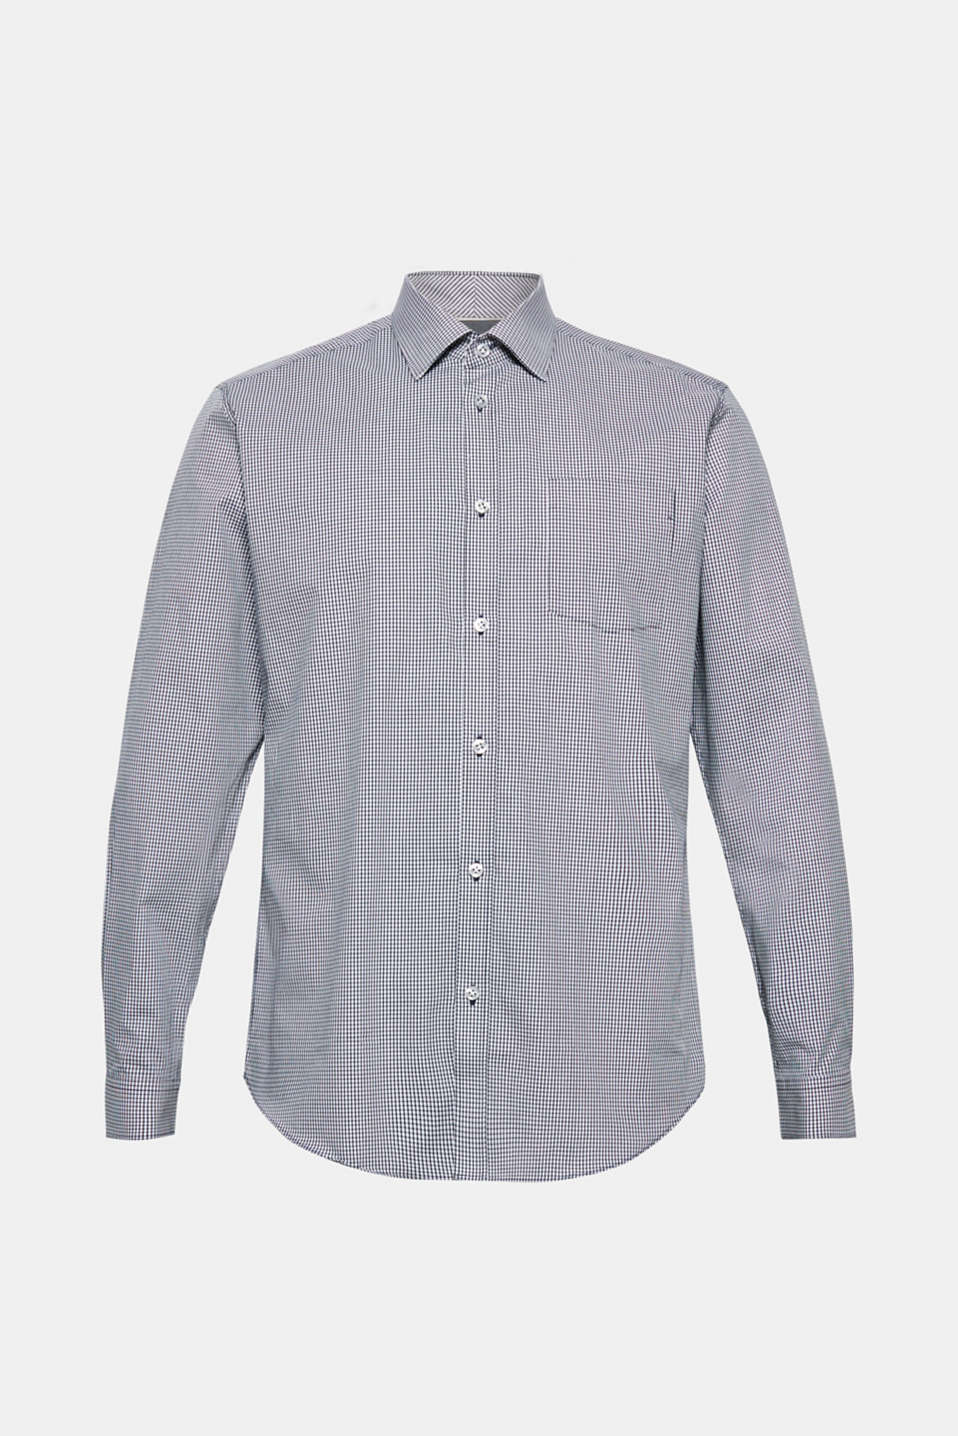 Finely-checked shirt, 100% cotton, NAVY, detail image number 6